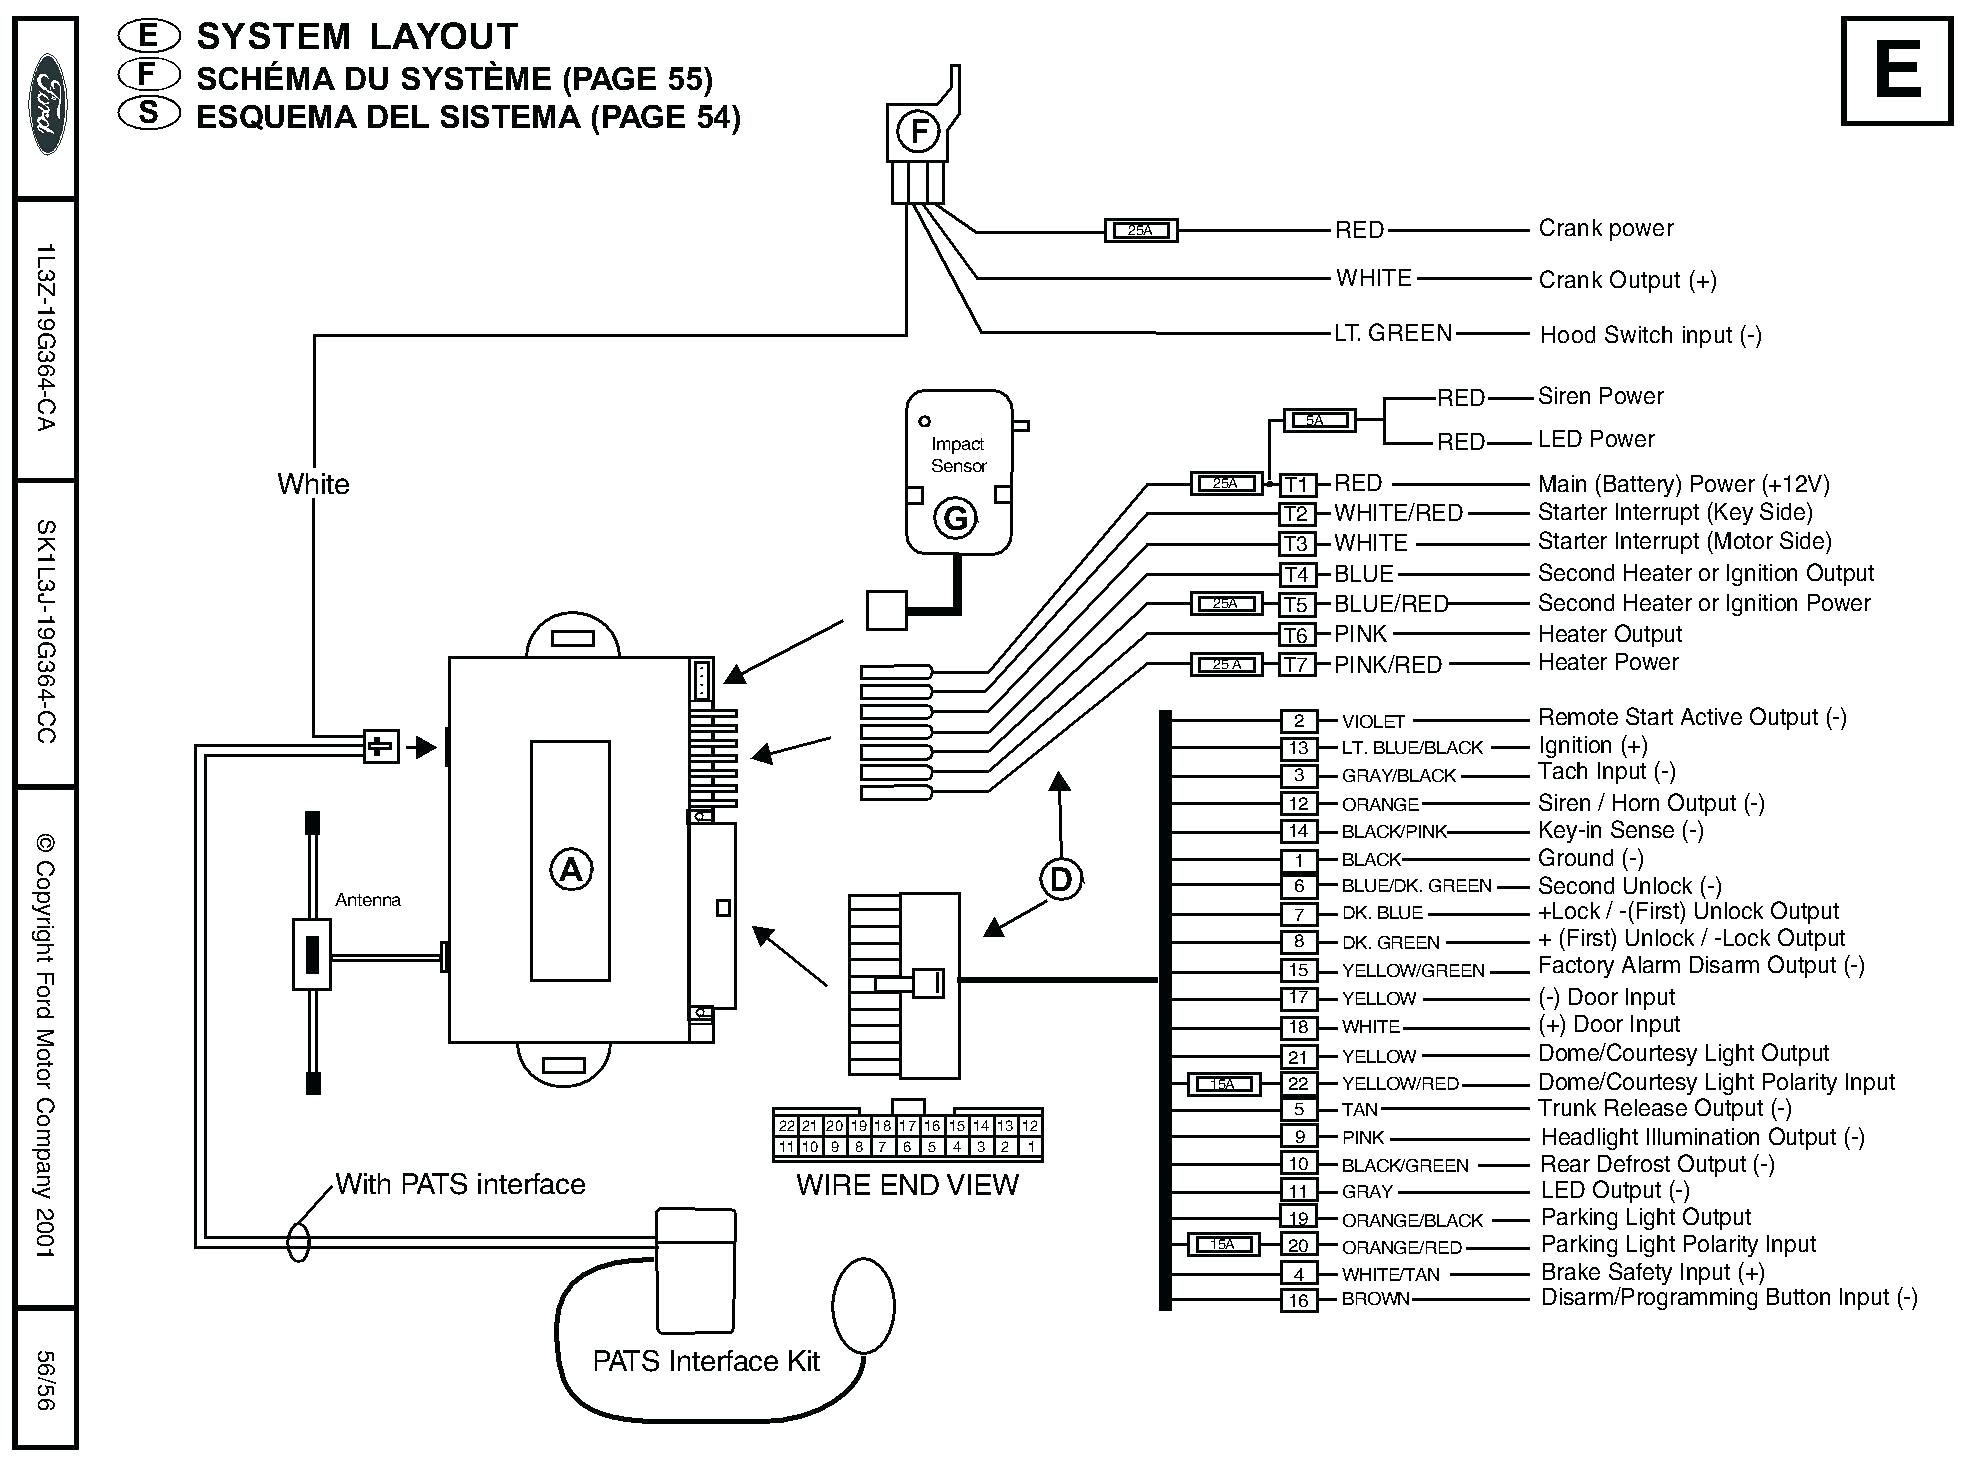 Ca 2293 Detector Circuit Diagram Together With Smoke Detector Wiring Diagram Wiring Diagram